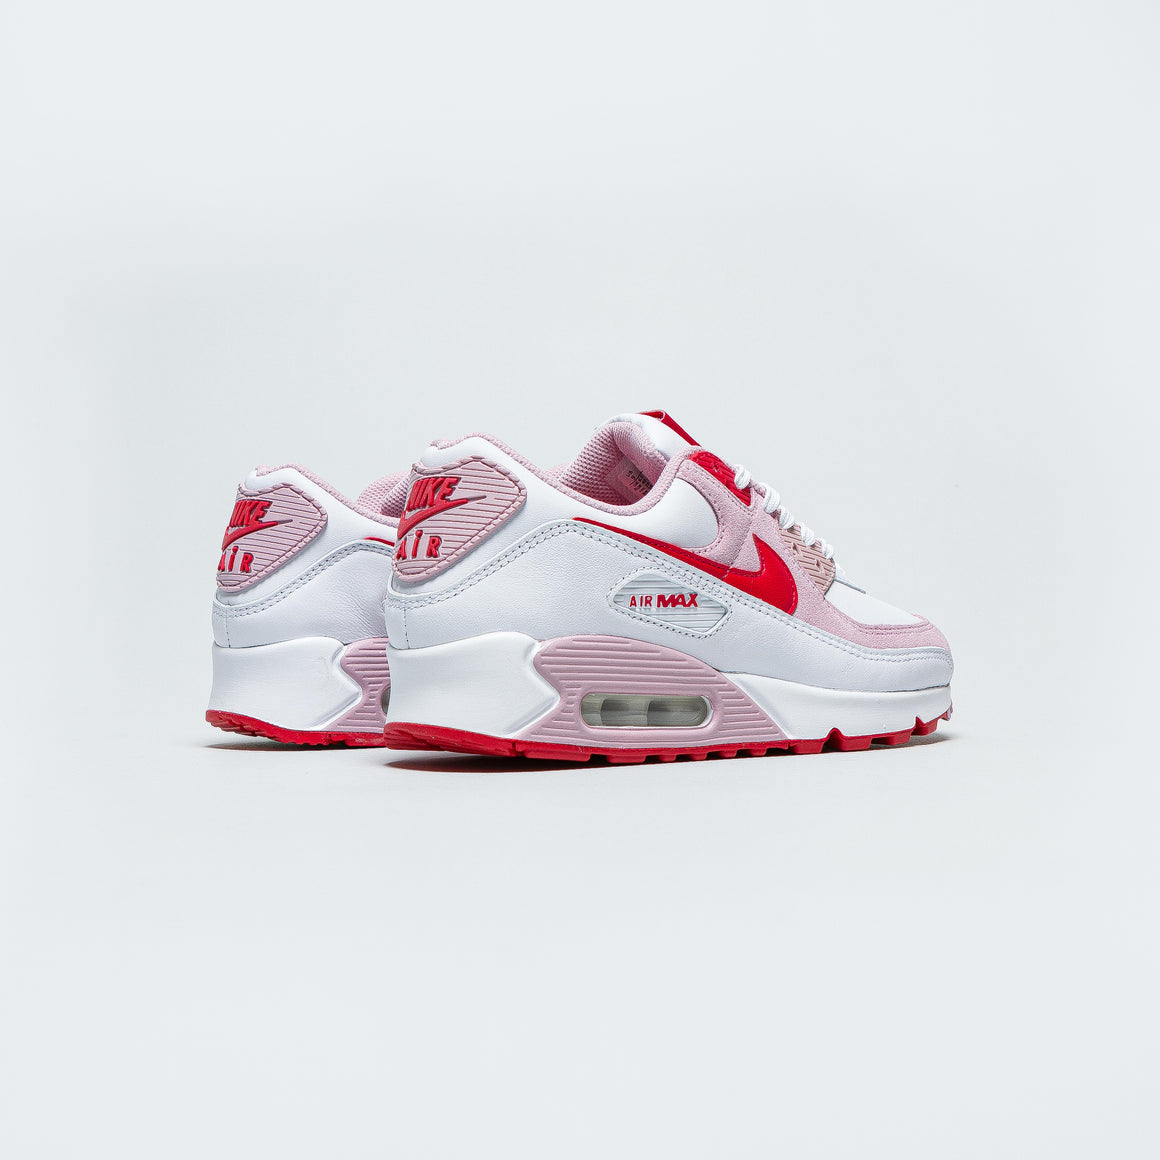 Nike - Womens Air Max 90 QS - White/University Red-Tulip Pink-White - Up There